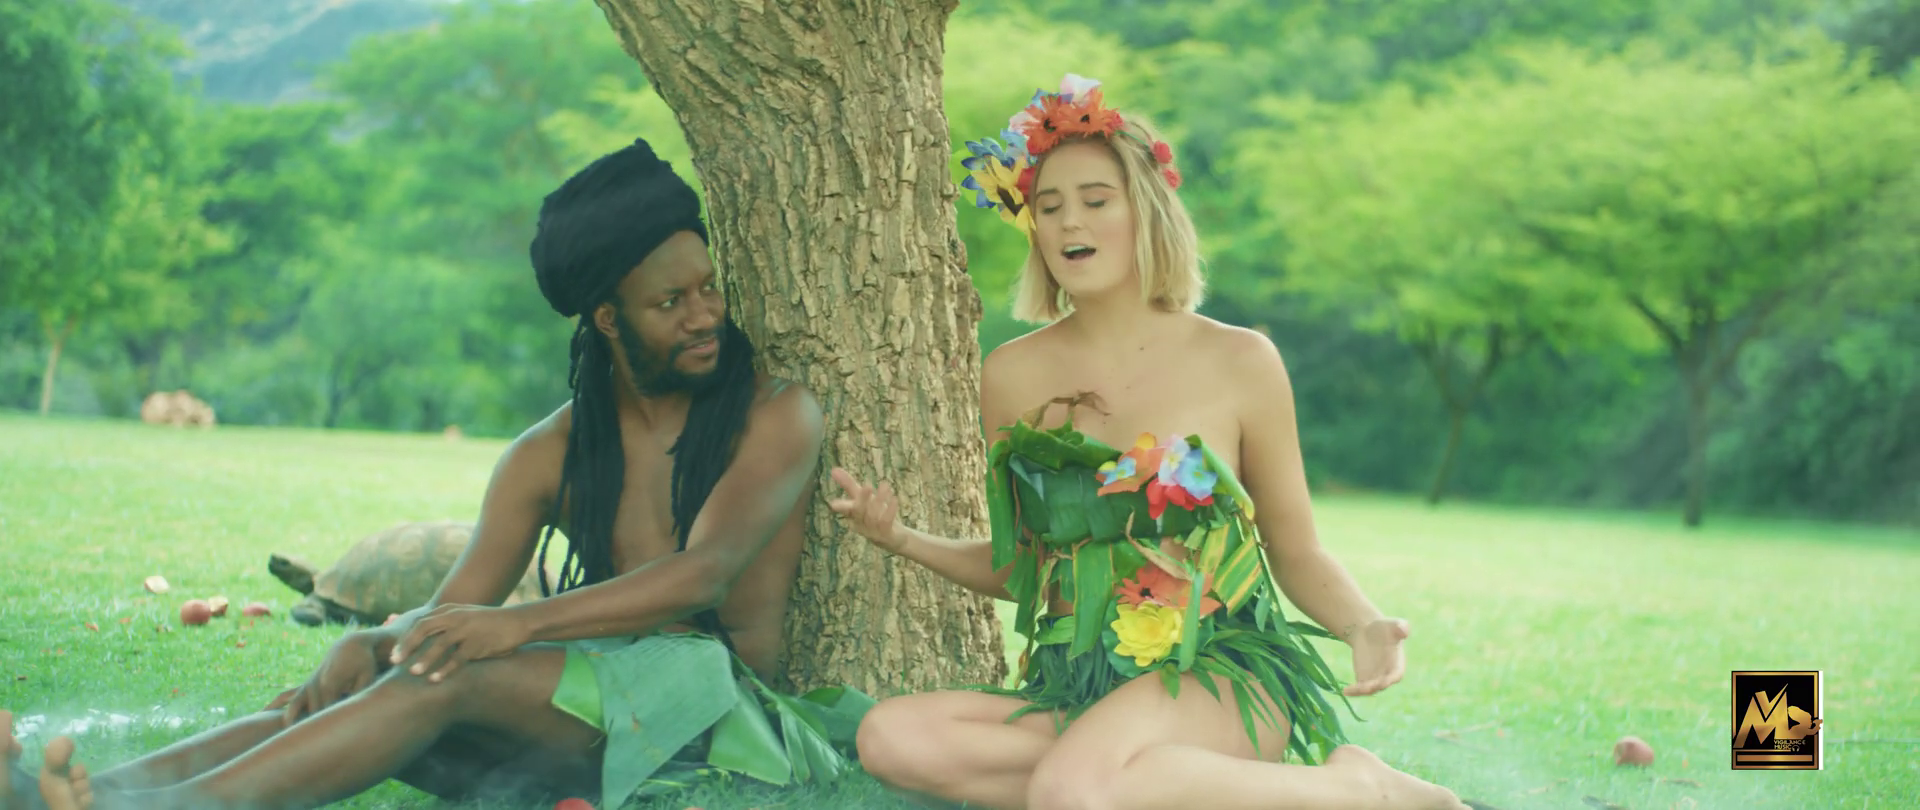 WINKY D DROPS NEW VALENTINE'S SONG FEATURING Gemma Griffiths